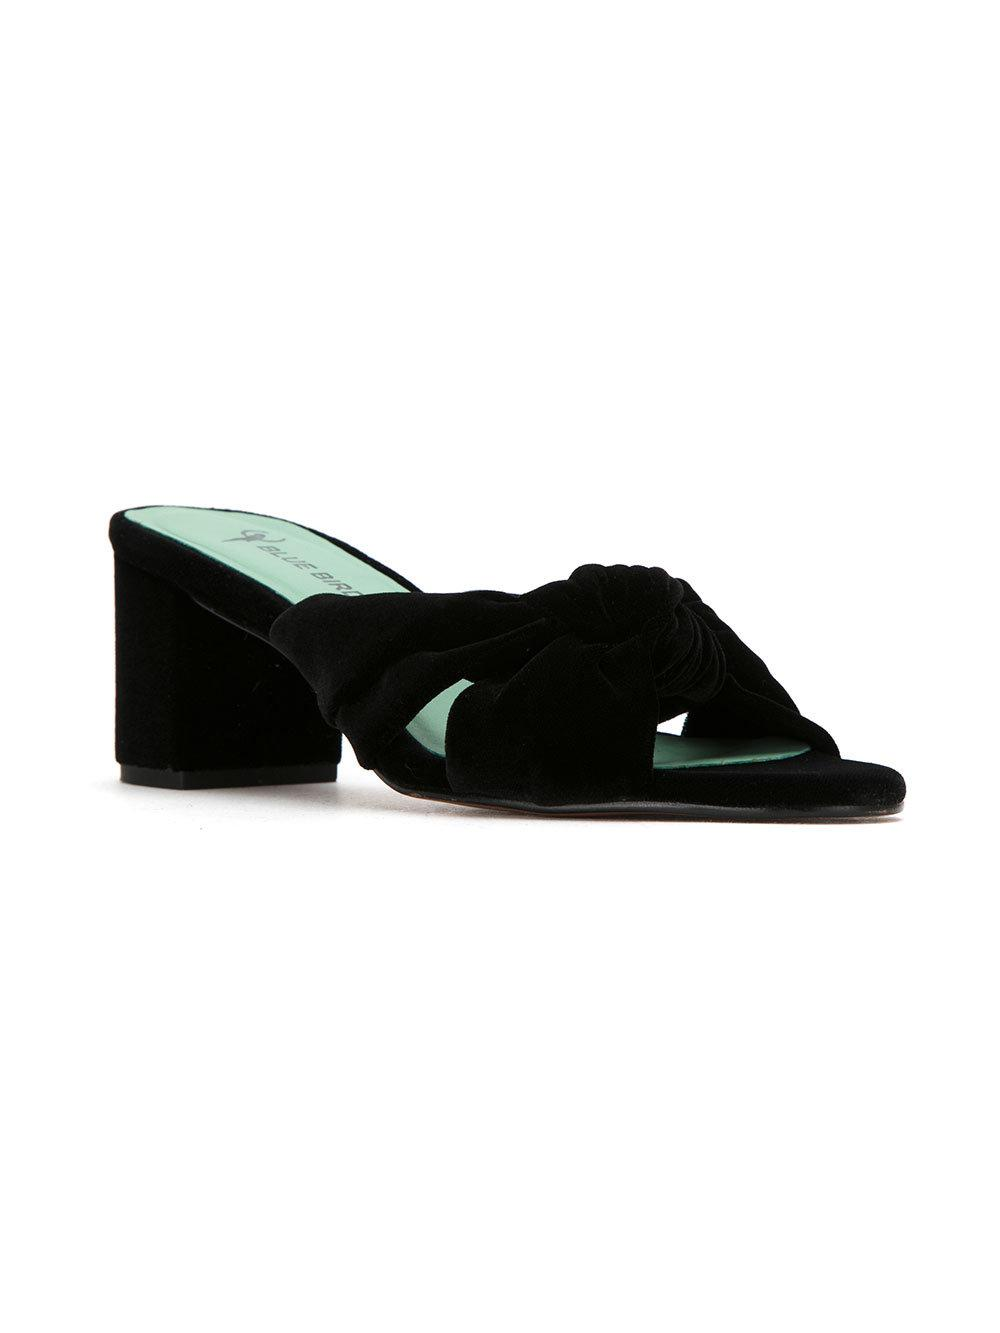 Blue Bird Shoes velvet Nó mules - Black farfetch neri Velluto